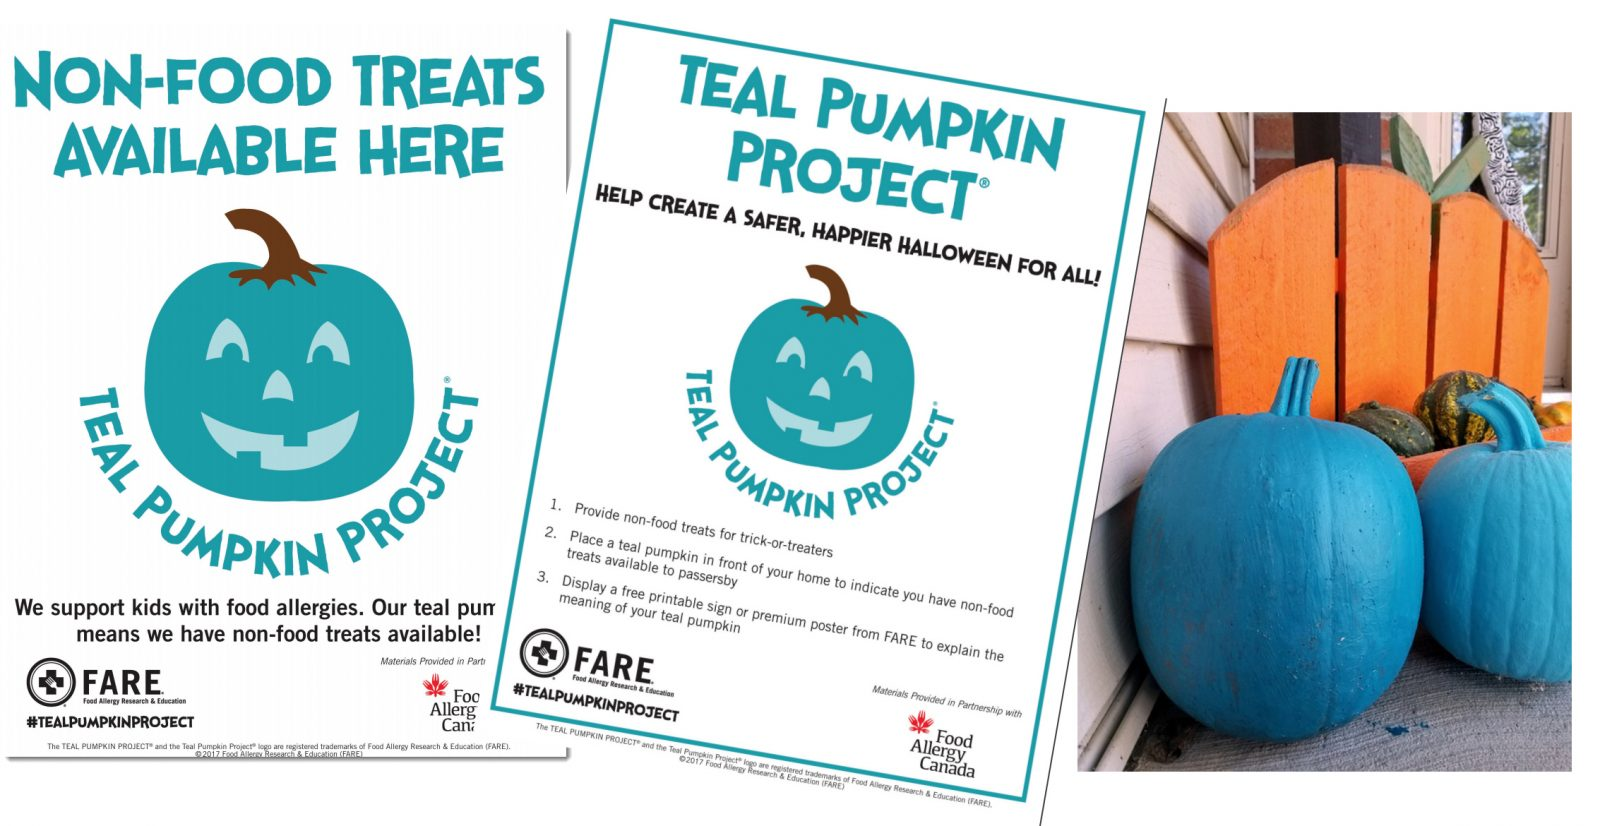 teal pumpkin project posters and 2 teal pumpkins on front porch